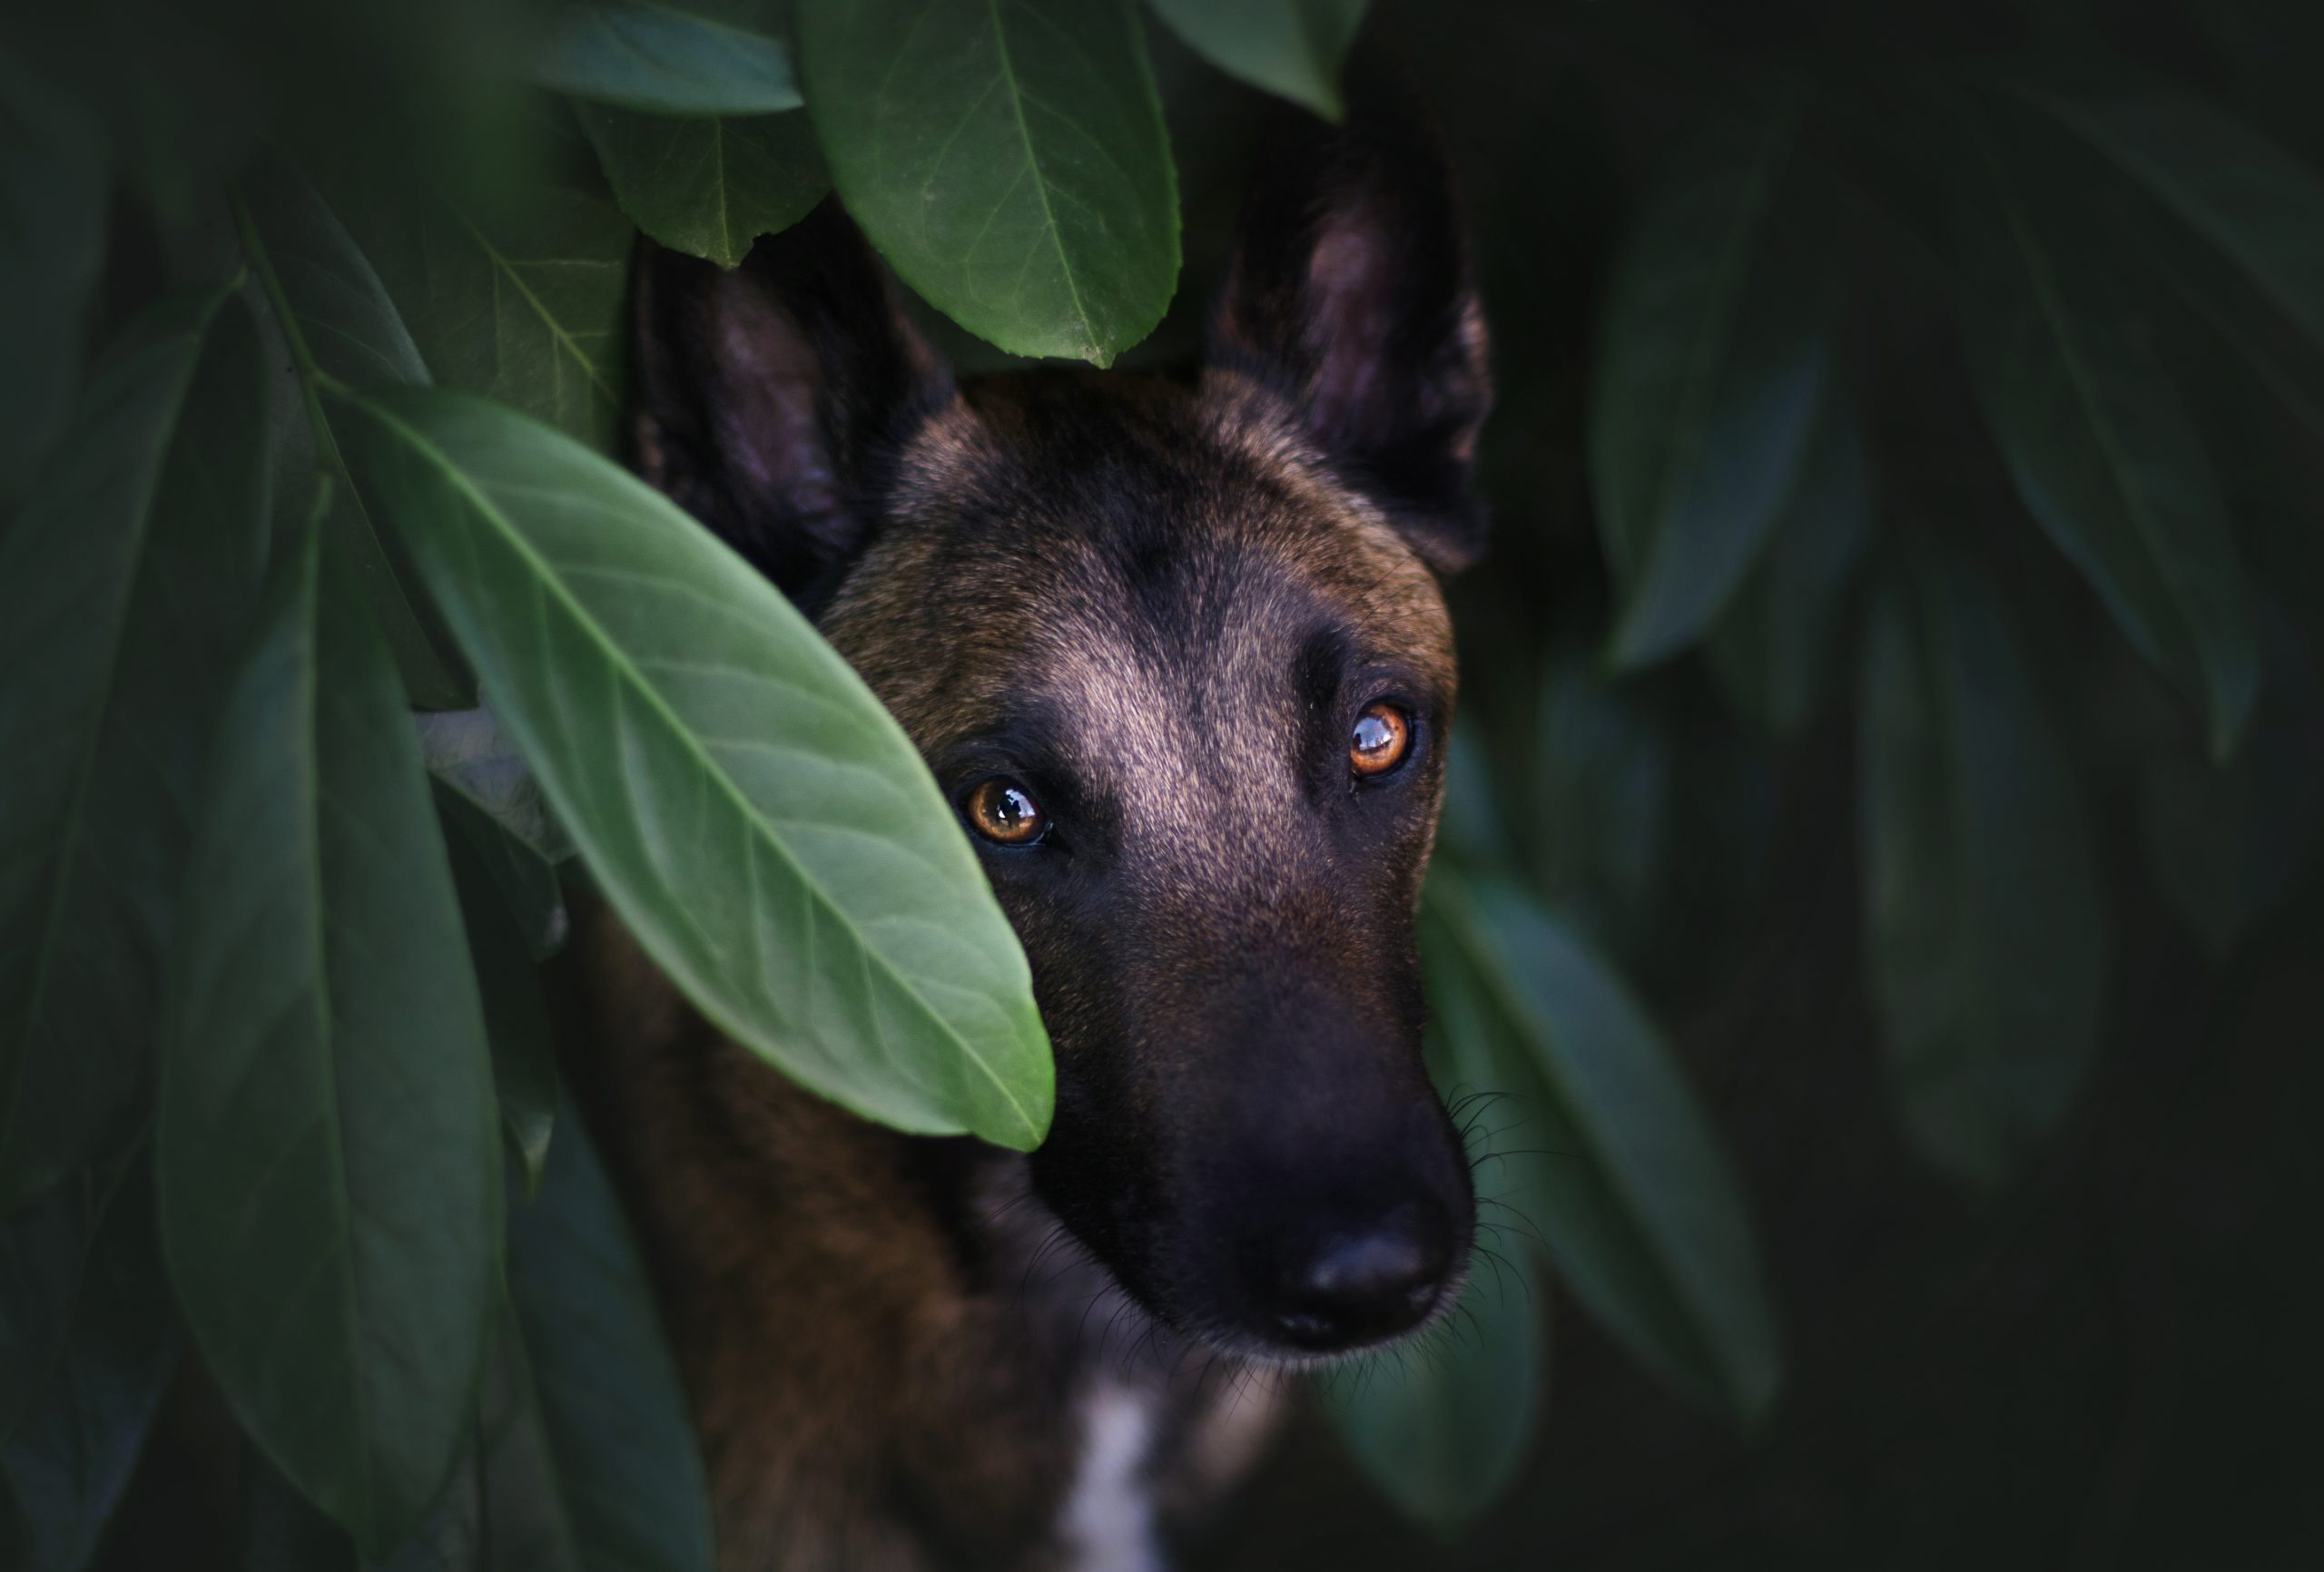 Chien photographe canin portrait cani look malinois foret lumiere yvelines